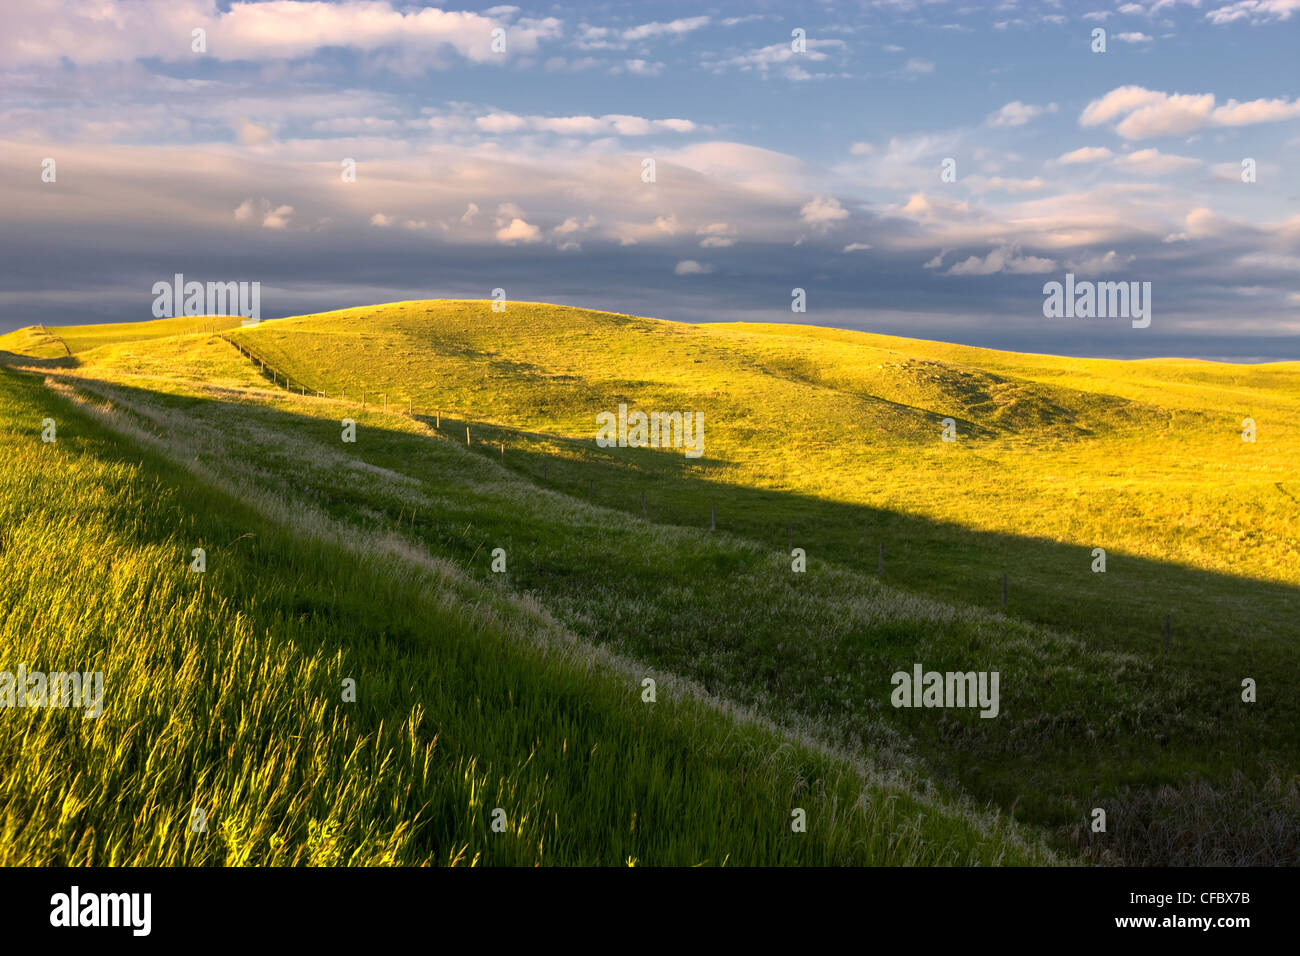 Fields in Spring time, Baildon, Saskatchewan, Canada. - Stock Image